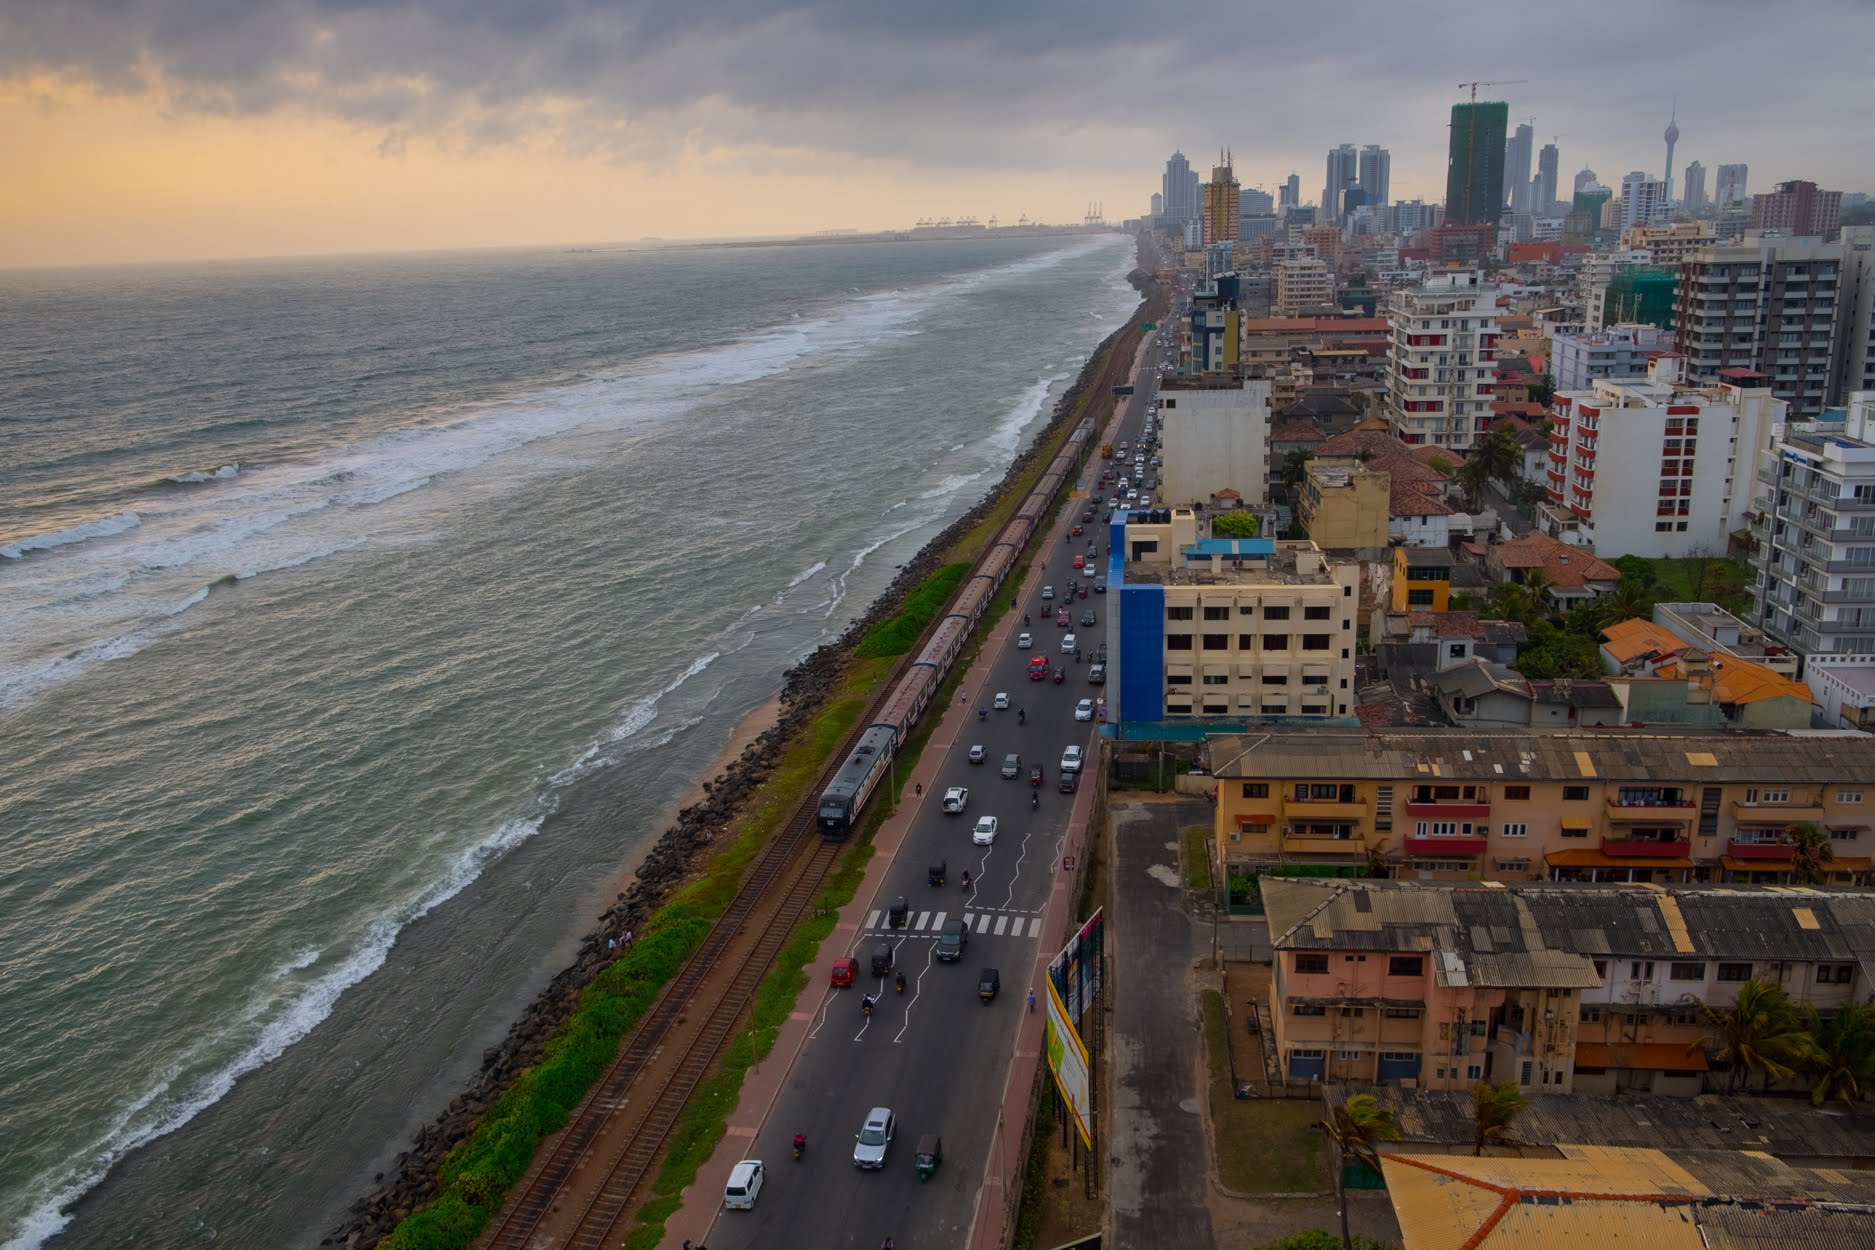 The busy view looking north upon Colombo Plan Road along the Indian Ocean towards the Bambalapitiya Railway station in Sri Lanka's capital city Colombo. Hiruni's parents both grew up and met in Colombo, which is being quickly redeveloped as Sri Lanka's economy improves in the decade since its 25 year civil war ended.